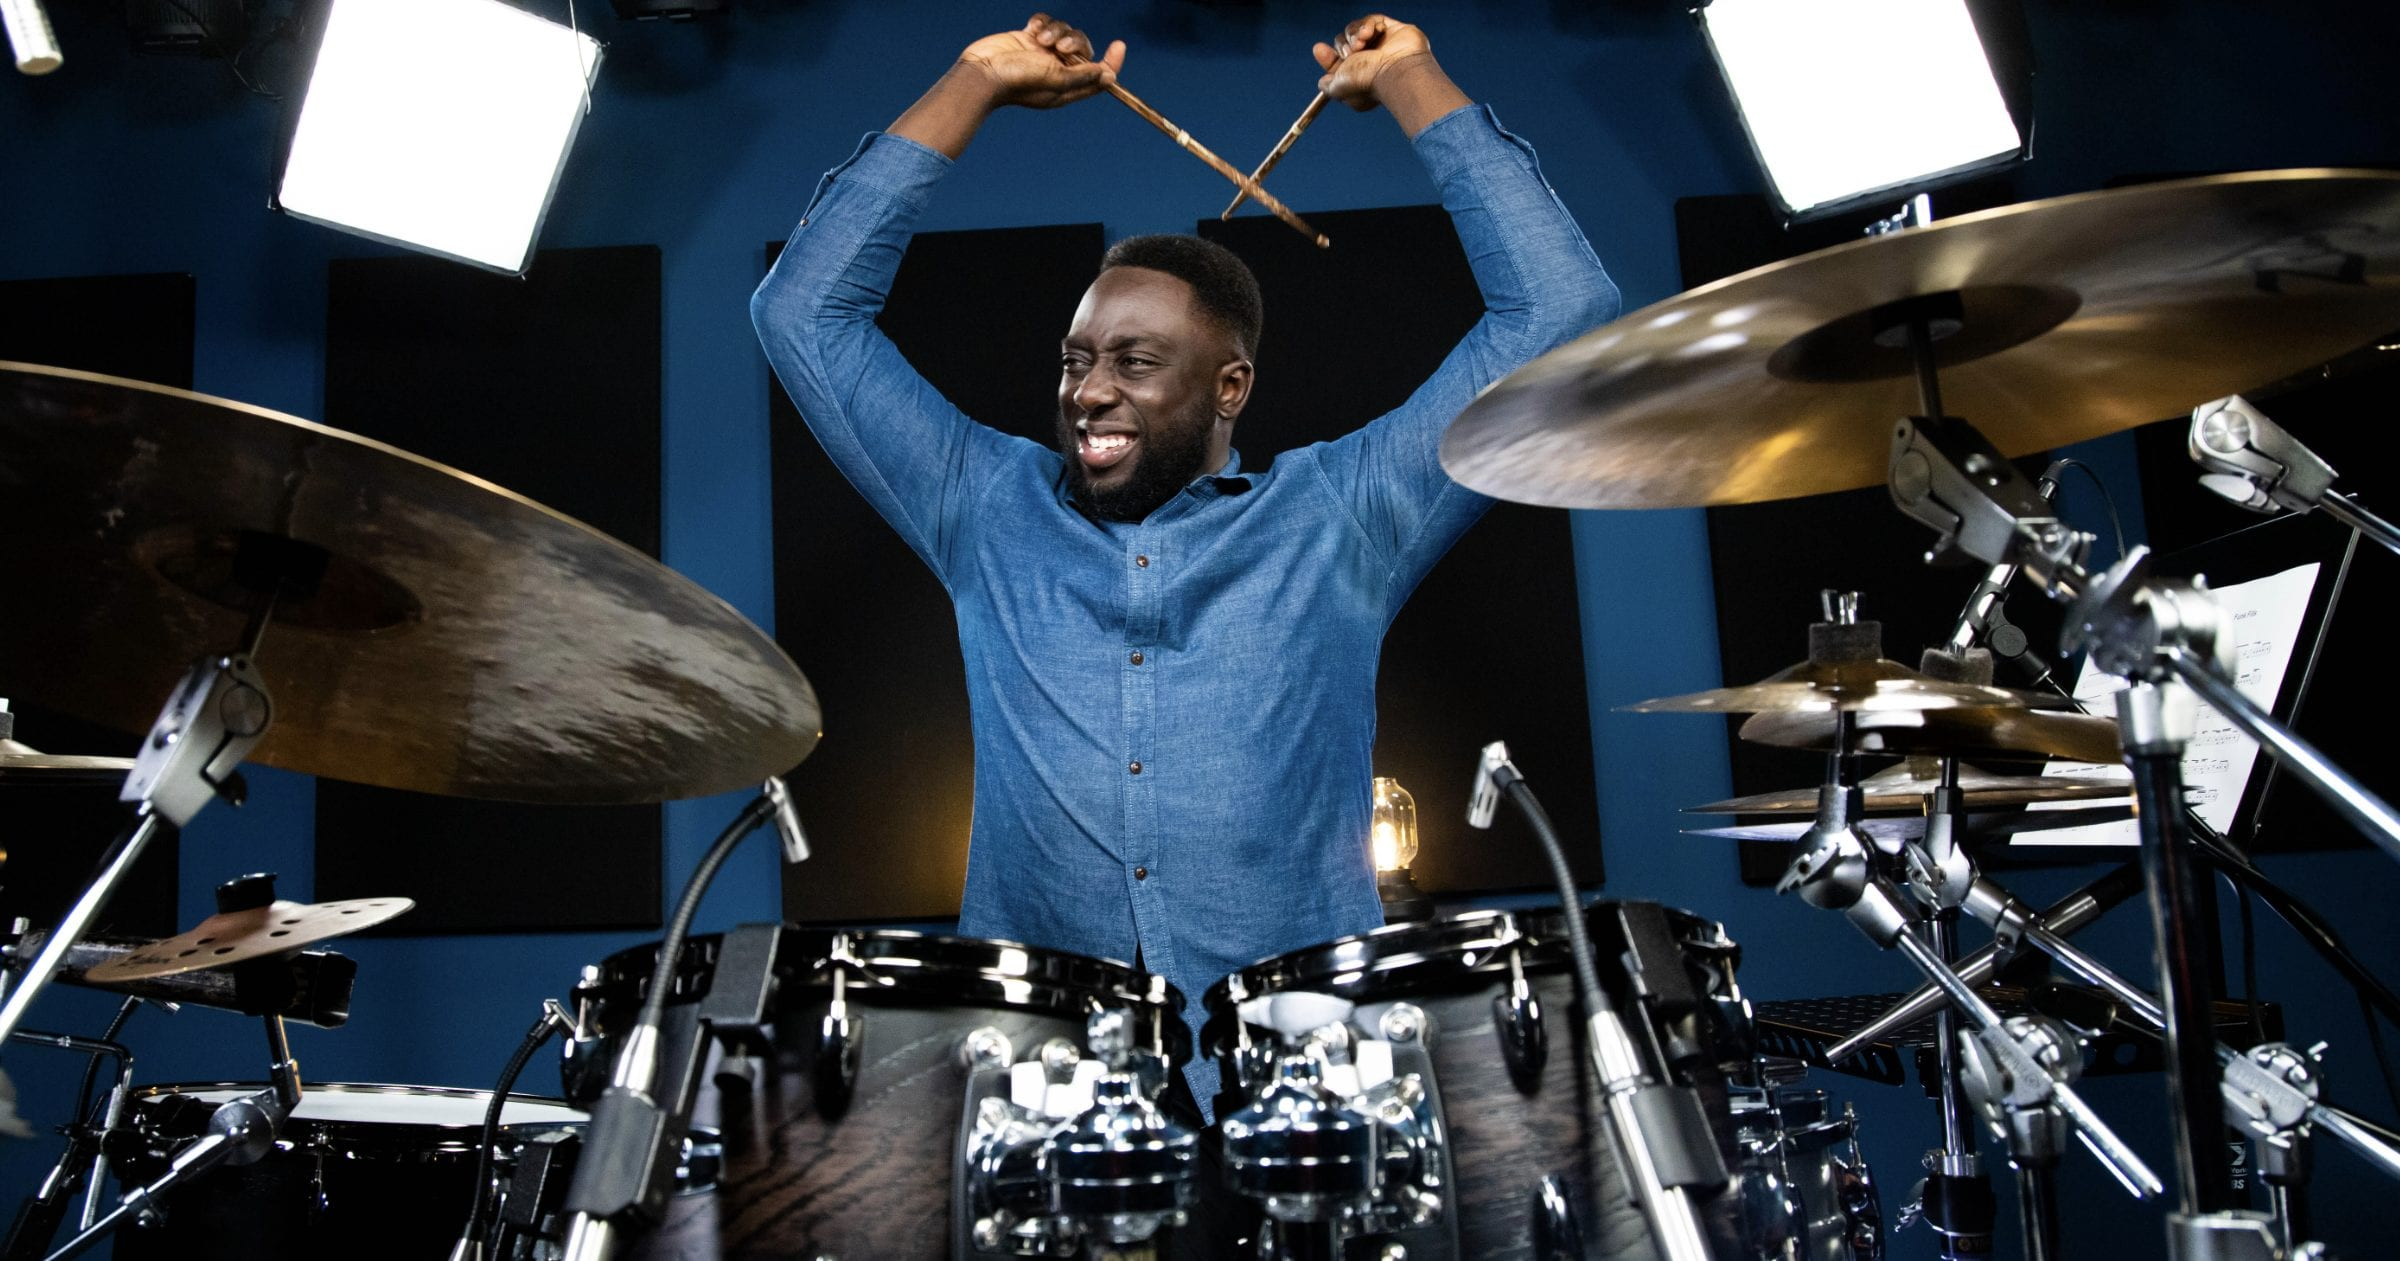 A picture of drummer Larnell Lewis going hard on the drums. Looks like a final crash on the cymbals is taking place.